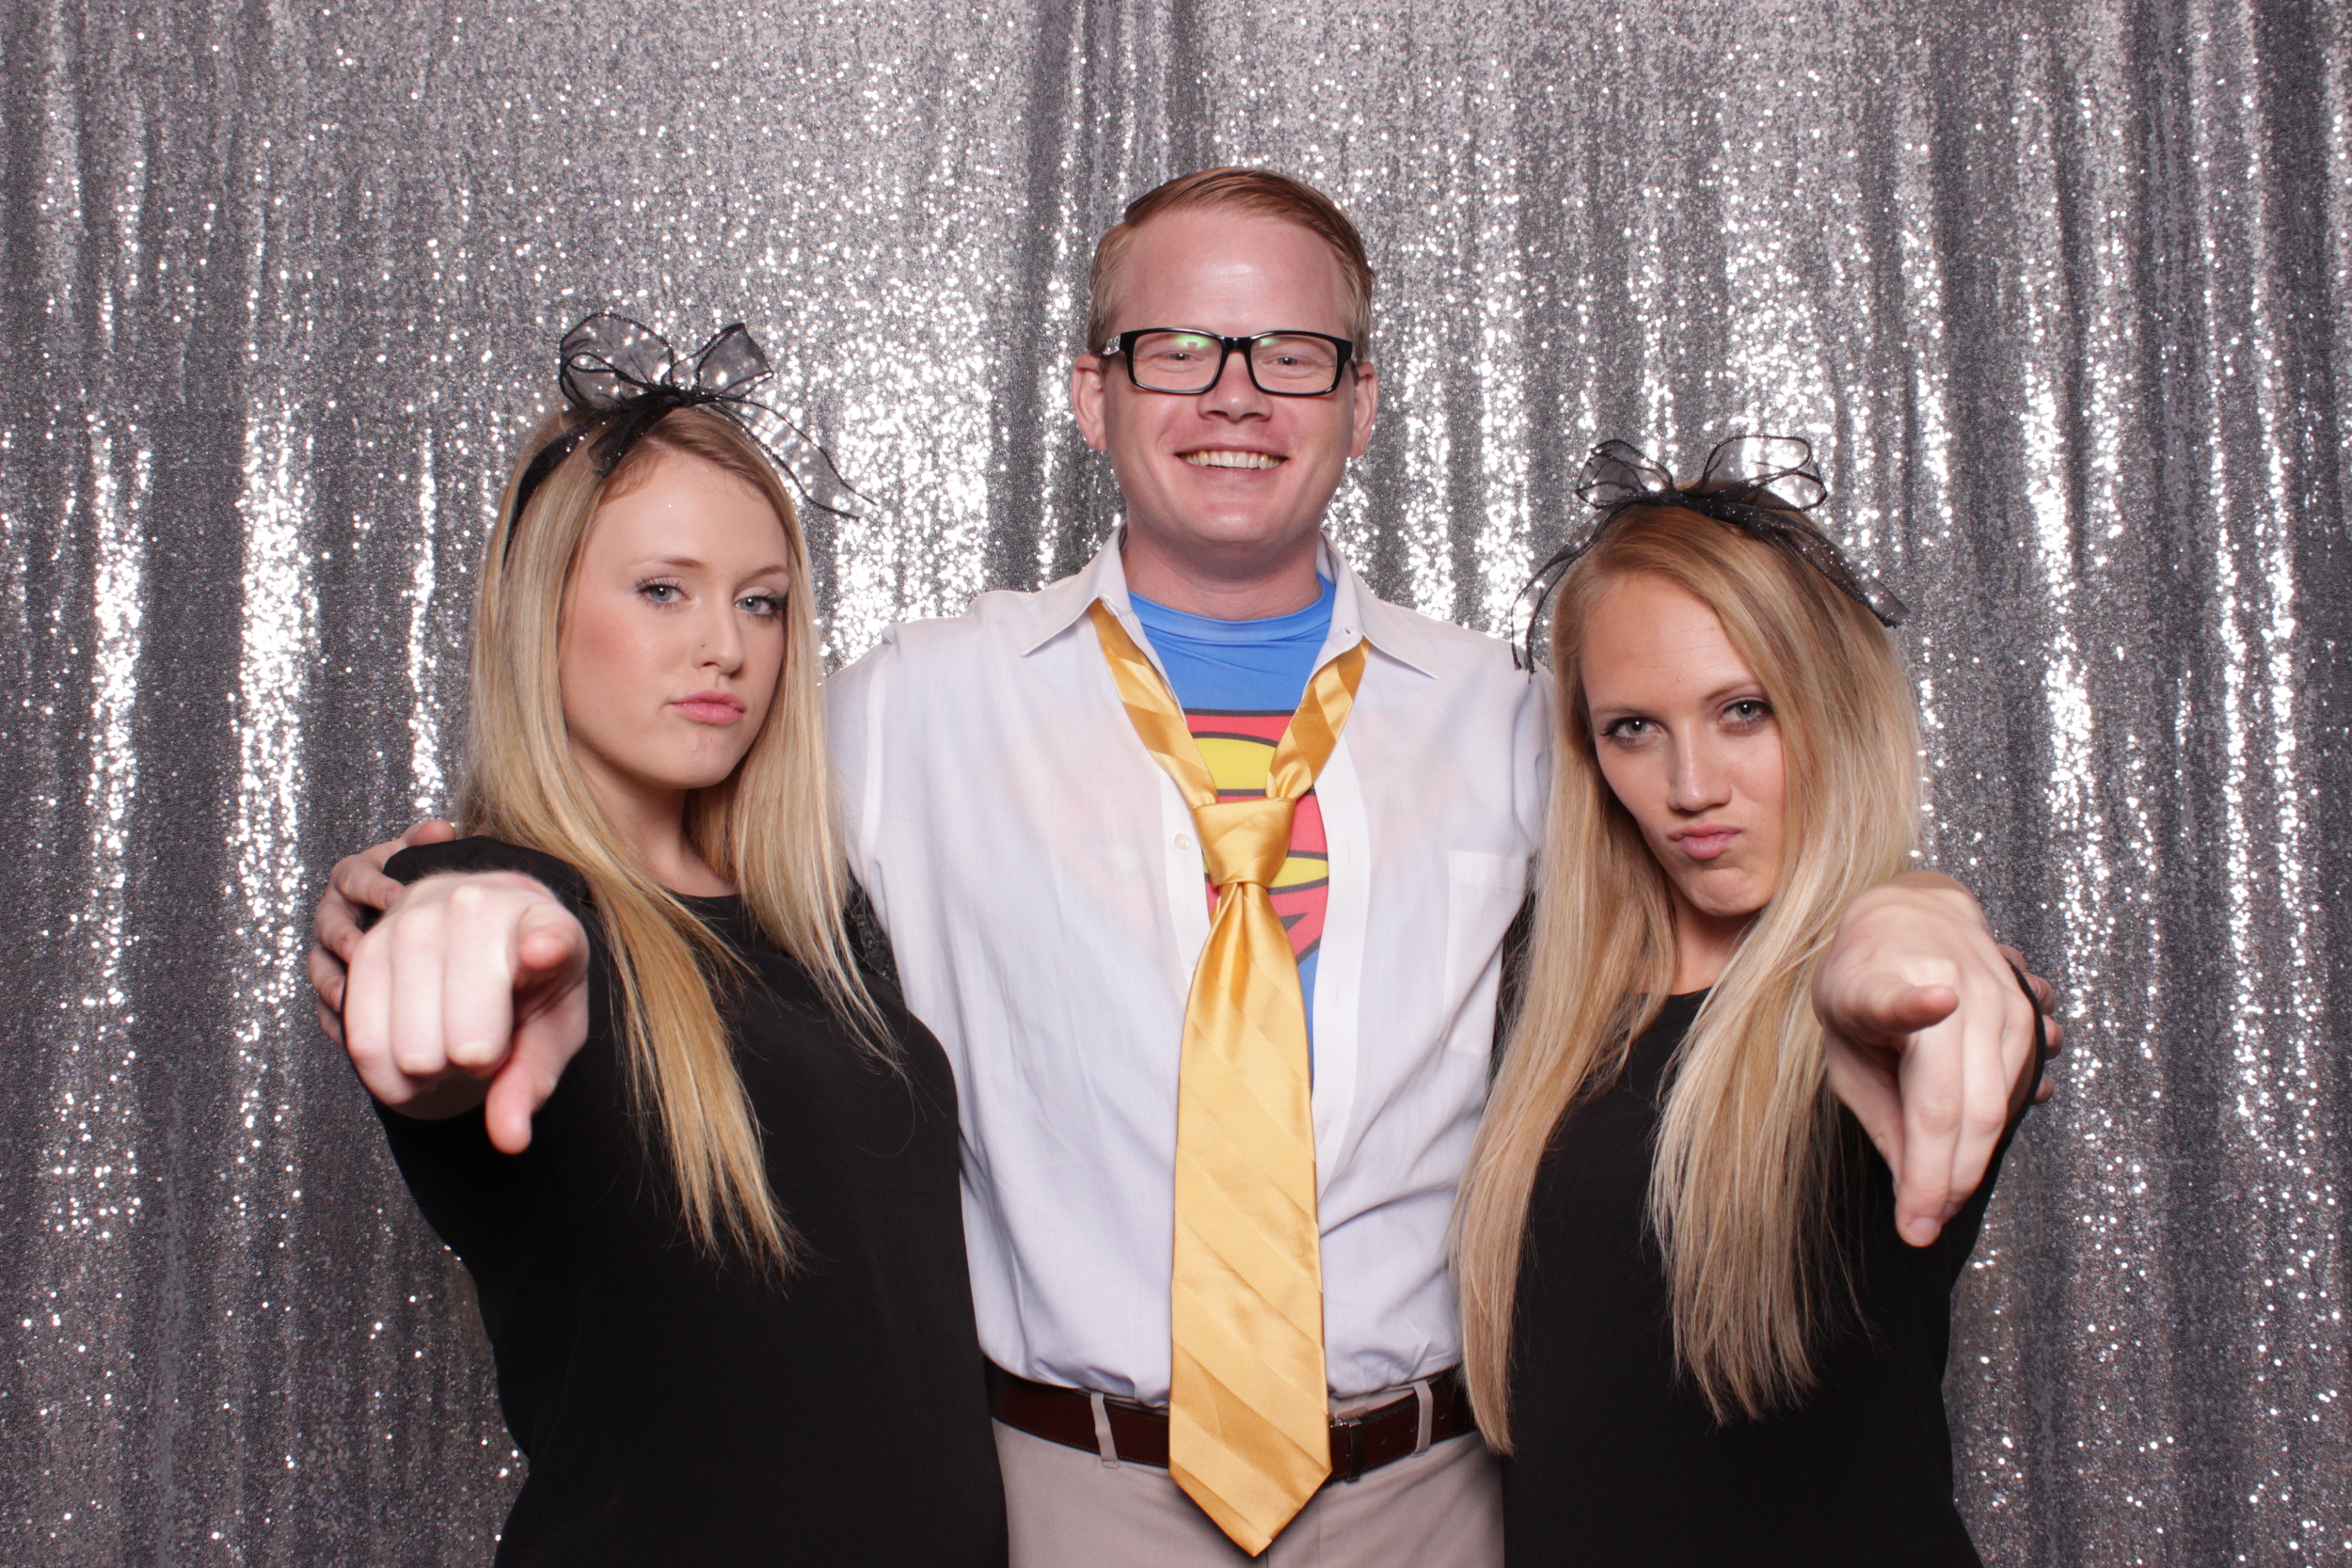 """These two ladies were the """"emoji dancing ladies"""", with Clark Kent in the middle of course!"""